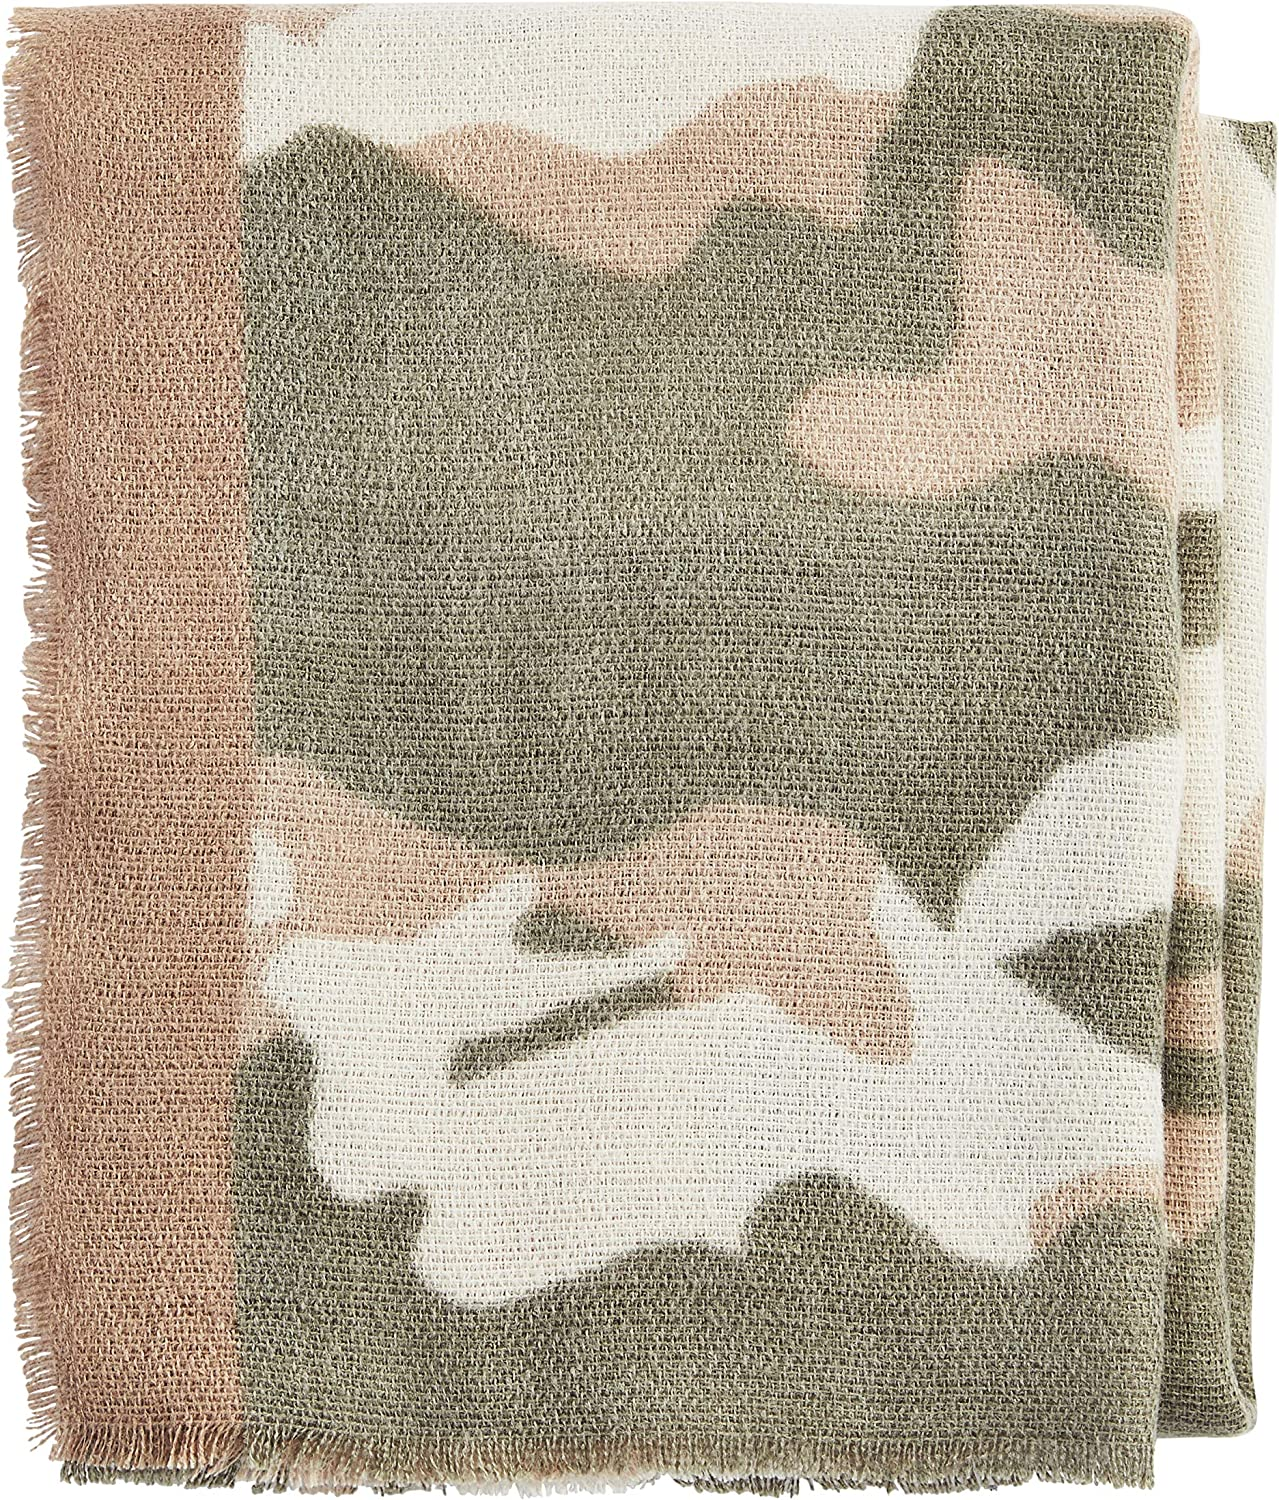 Mud Pie womens gift Limited time trial price Camo Scarf